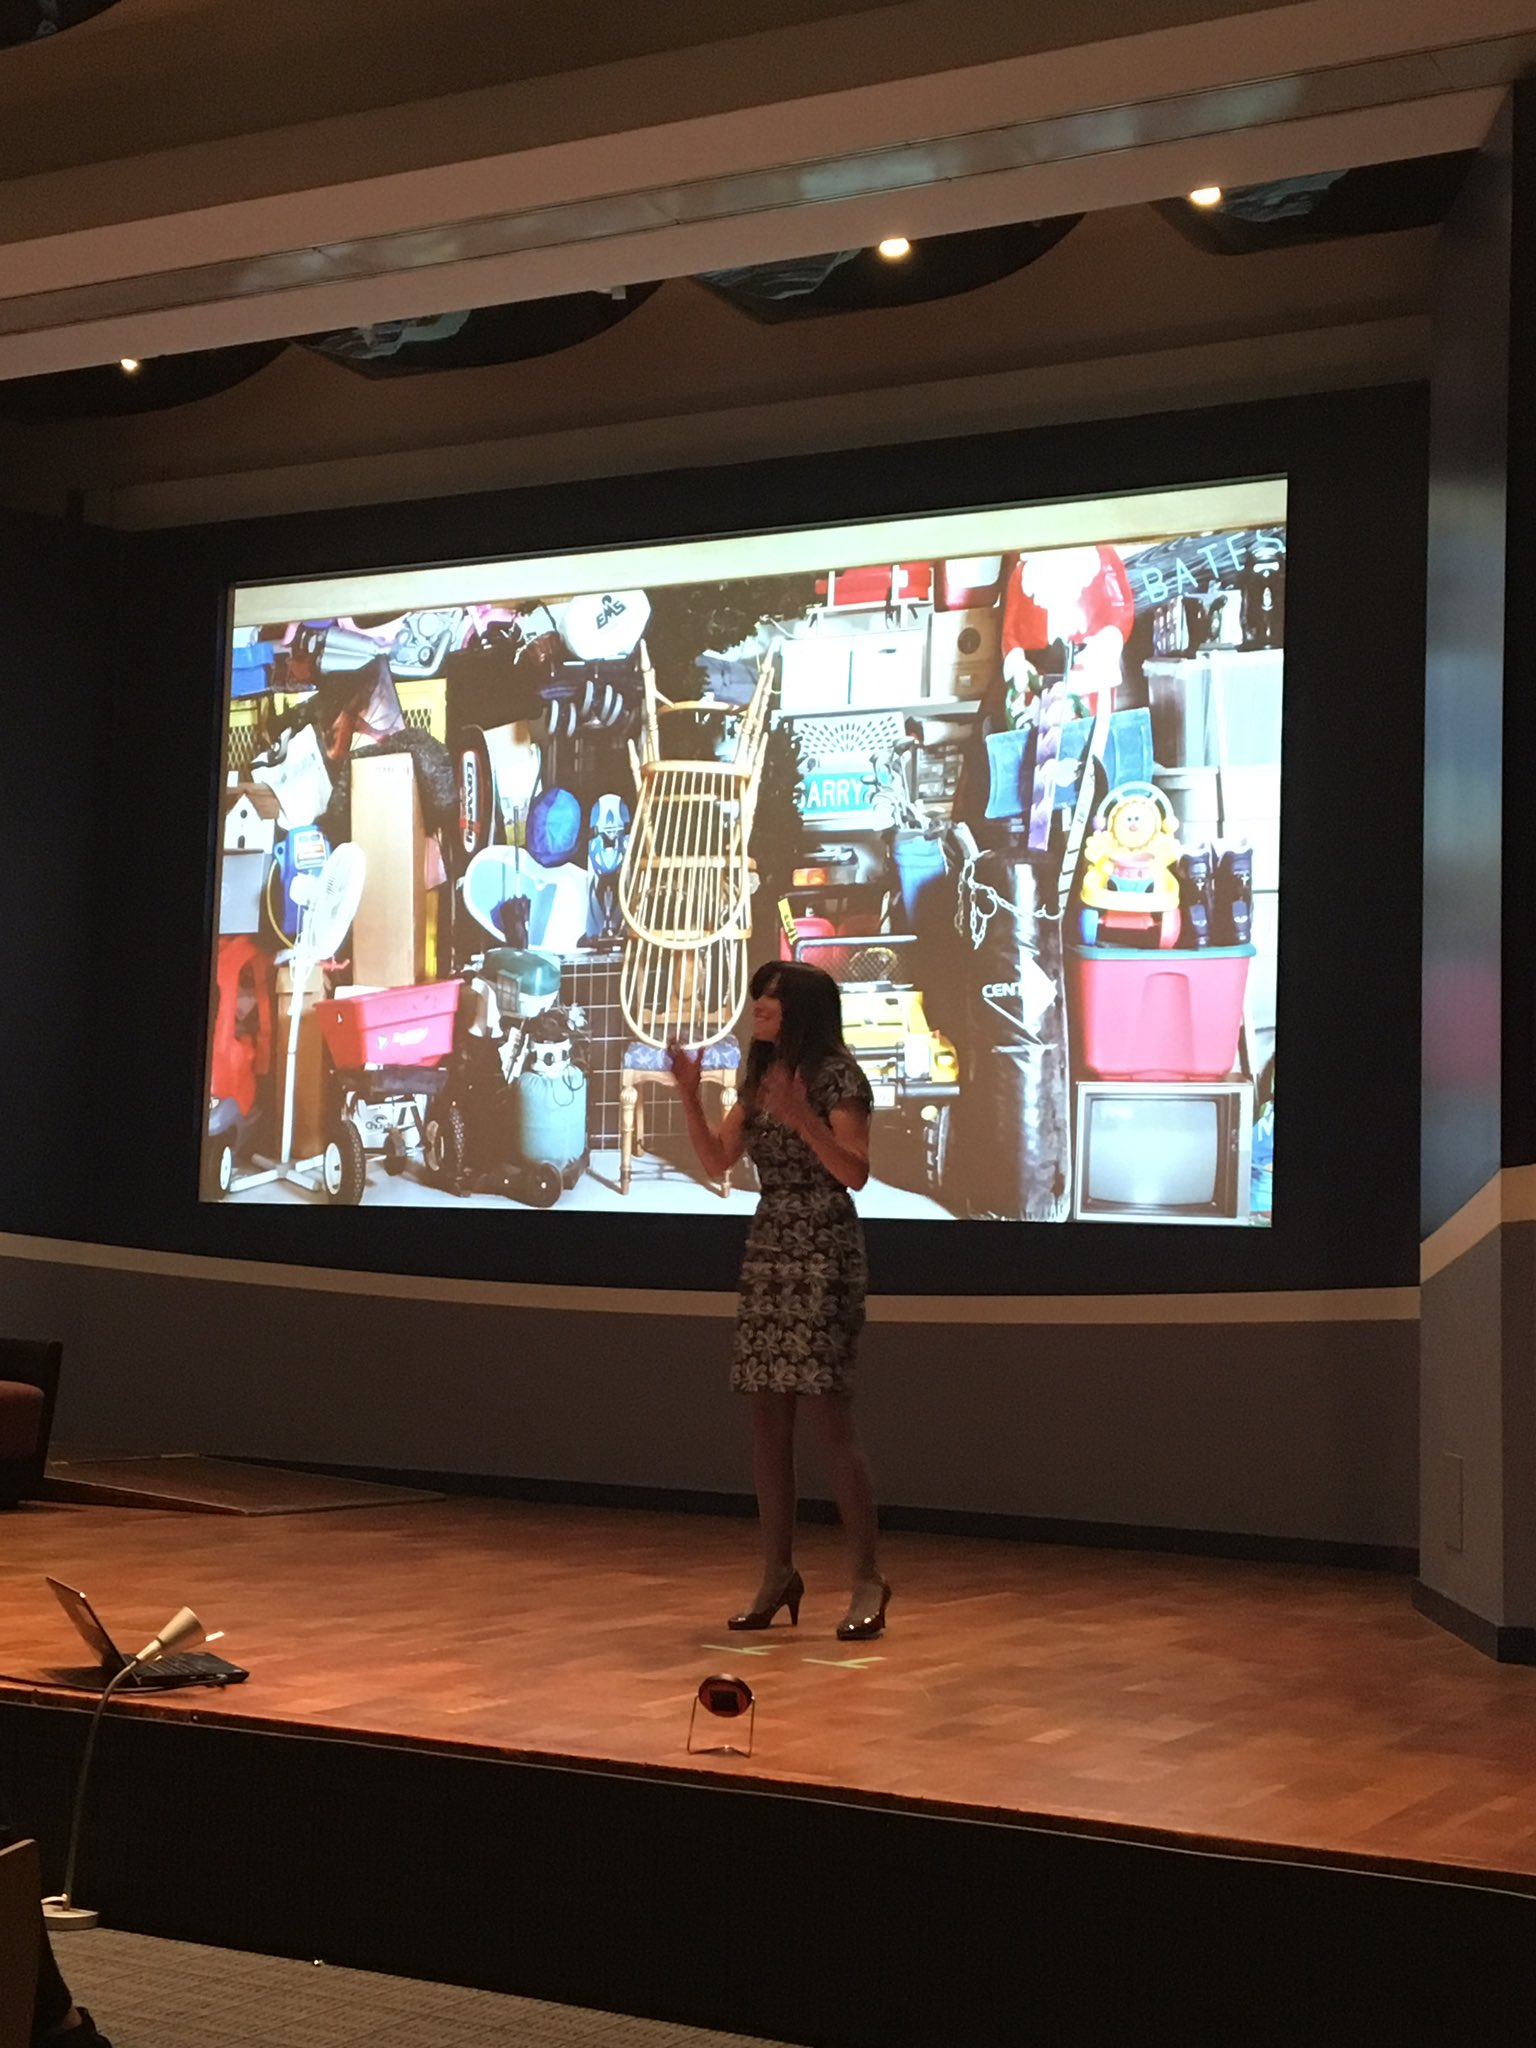 Meet Angela from @Quupe_Inc, an online platform to share your stuff. #socent #sharingeconomy #Propel2017 https://t.co/RF7iPsYL2f